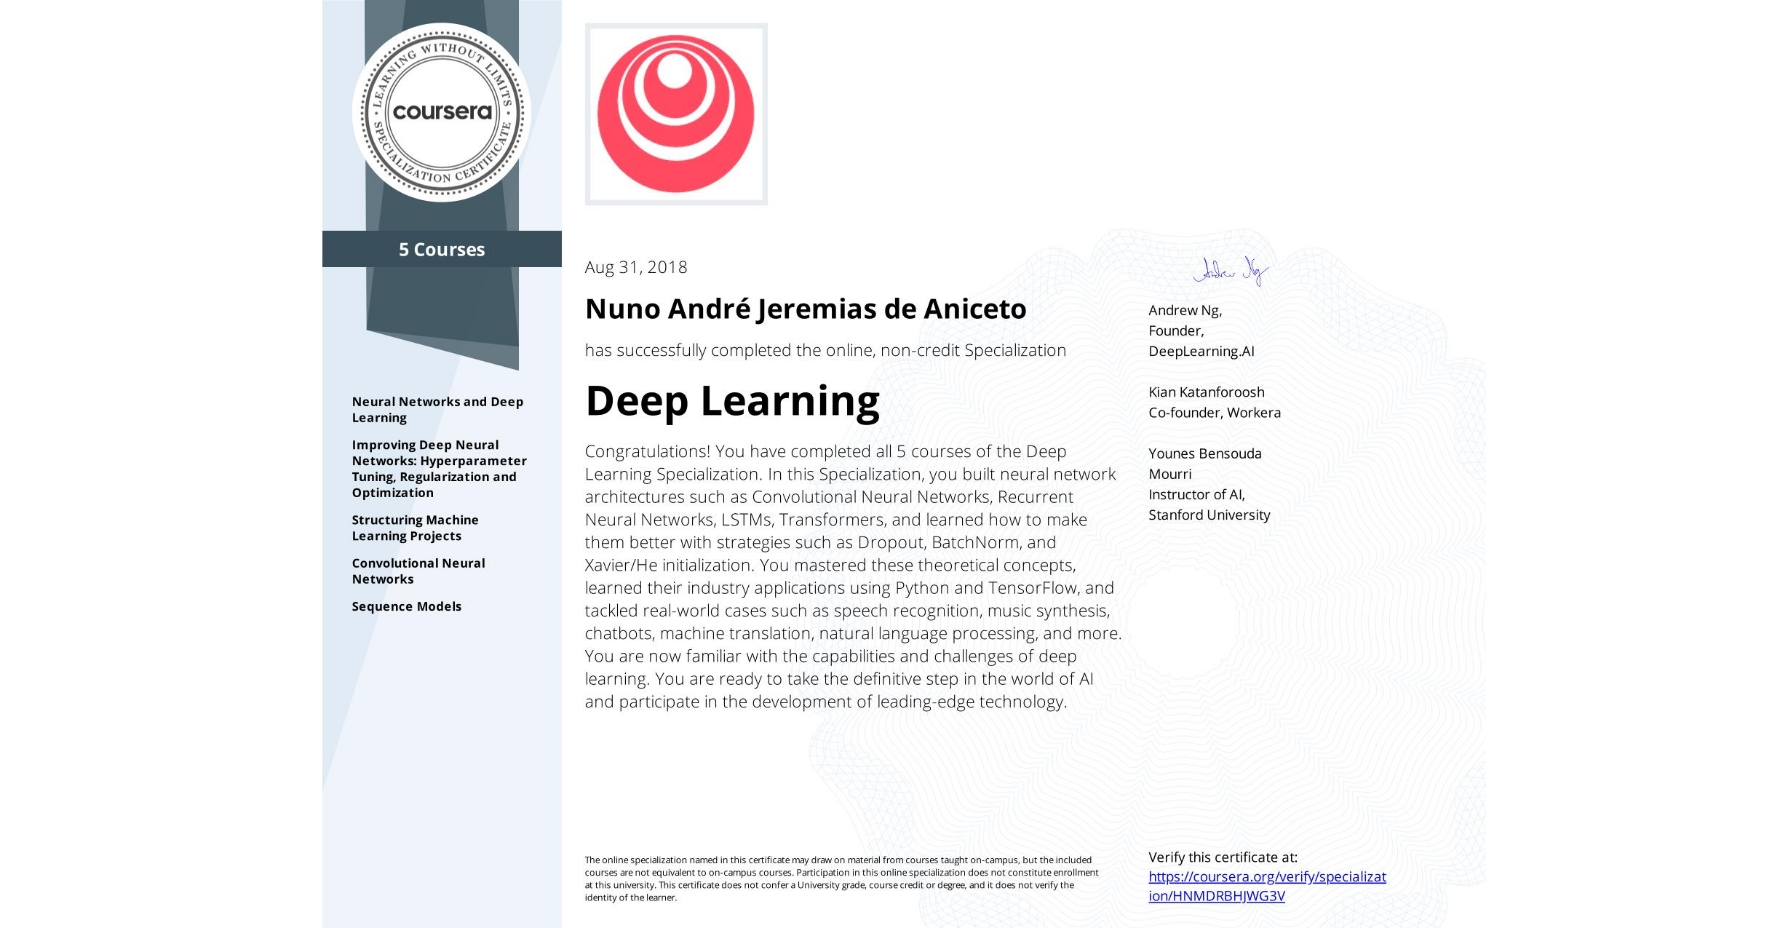 View certificate for Nuno André Jeremias de Aniceto, Deep Learning, offered through Coursera. Congratulations! You have completed all 5 courses of the Deep Learning Specialization.  In this Specialization, you built neural network architectures such as Convolutional Neural Networks, Recurrent Neural Networks, LSTMs, Transformers, and learned how to make them better with strategies such as Dropout, BatchNorm, and Xavier/He initialization. You mastered these theoretical concepts, learned their industry applications using Python and TensorFlow, and tackled real-world cases such as speech recognition, music synthesis, chatbots, machine translation, natural language processing, and more.  You are now familiar with the capabilities and challenges of deep learning. You are ready to take the definitive step in the world of AI and participate in the development of leading-edge technology.